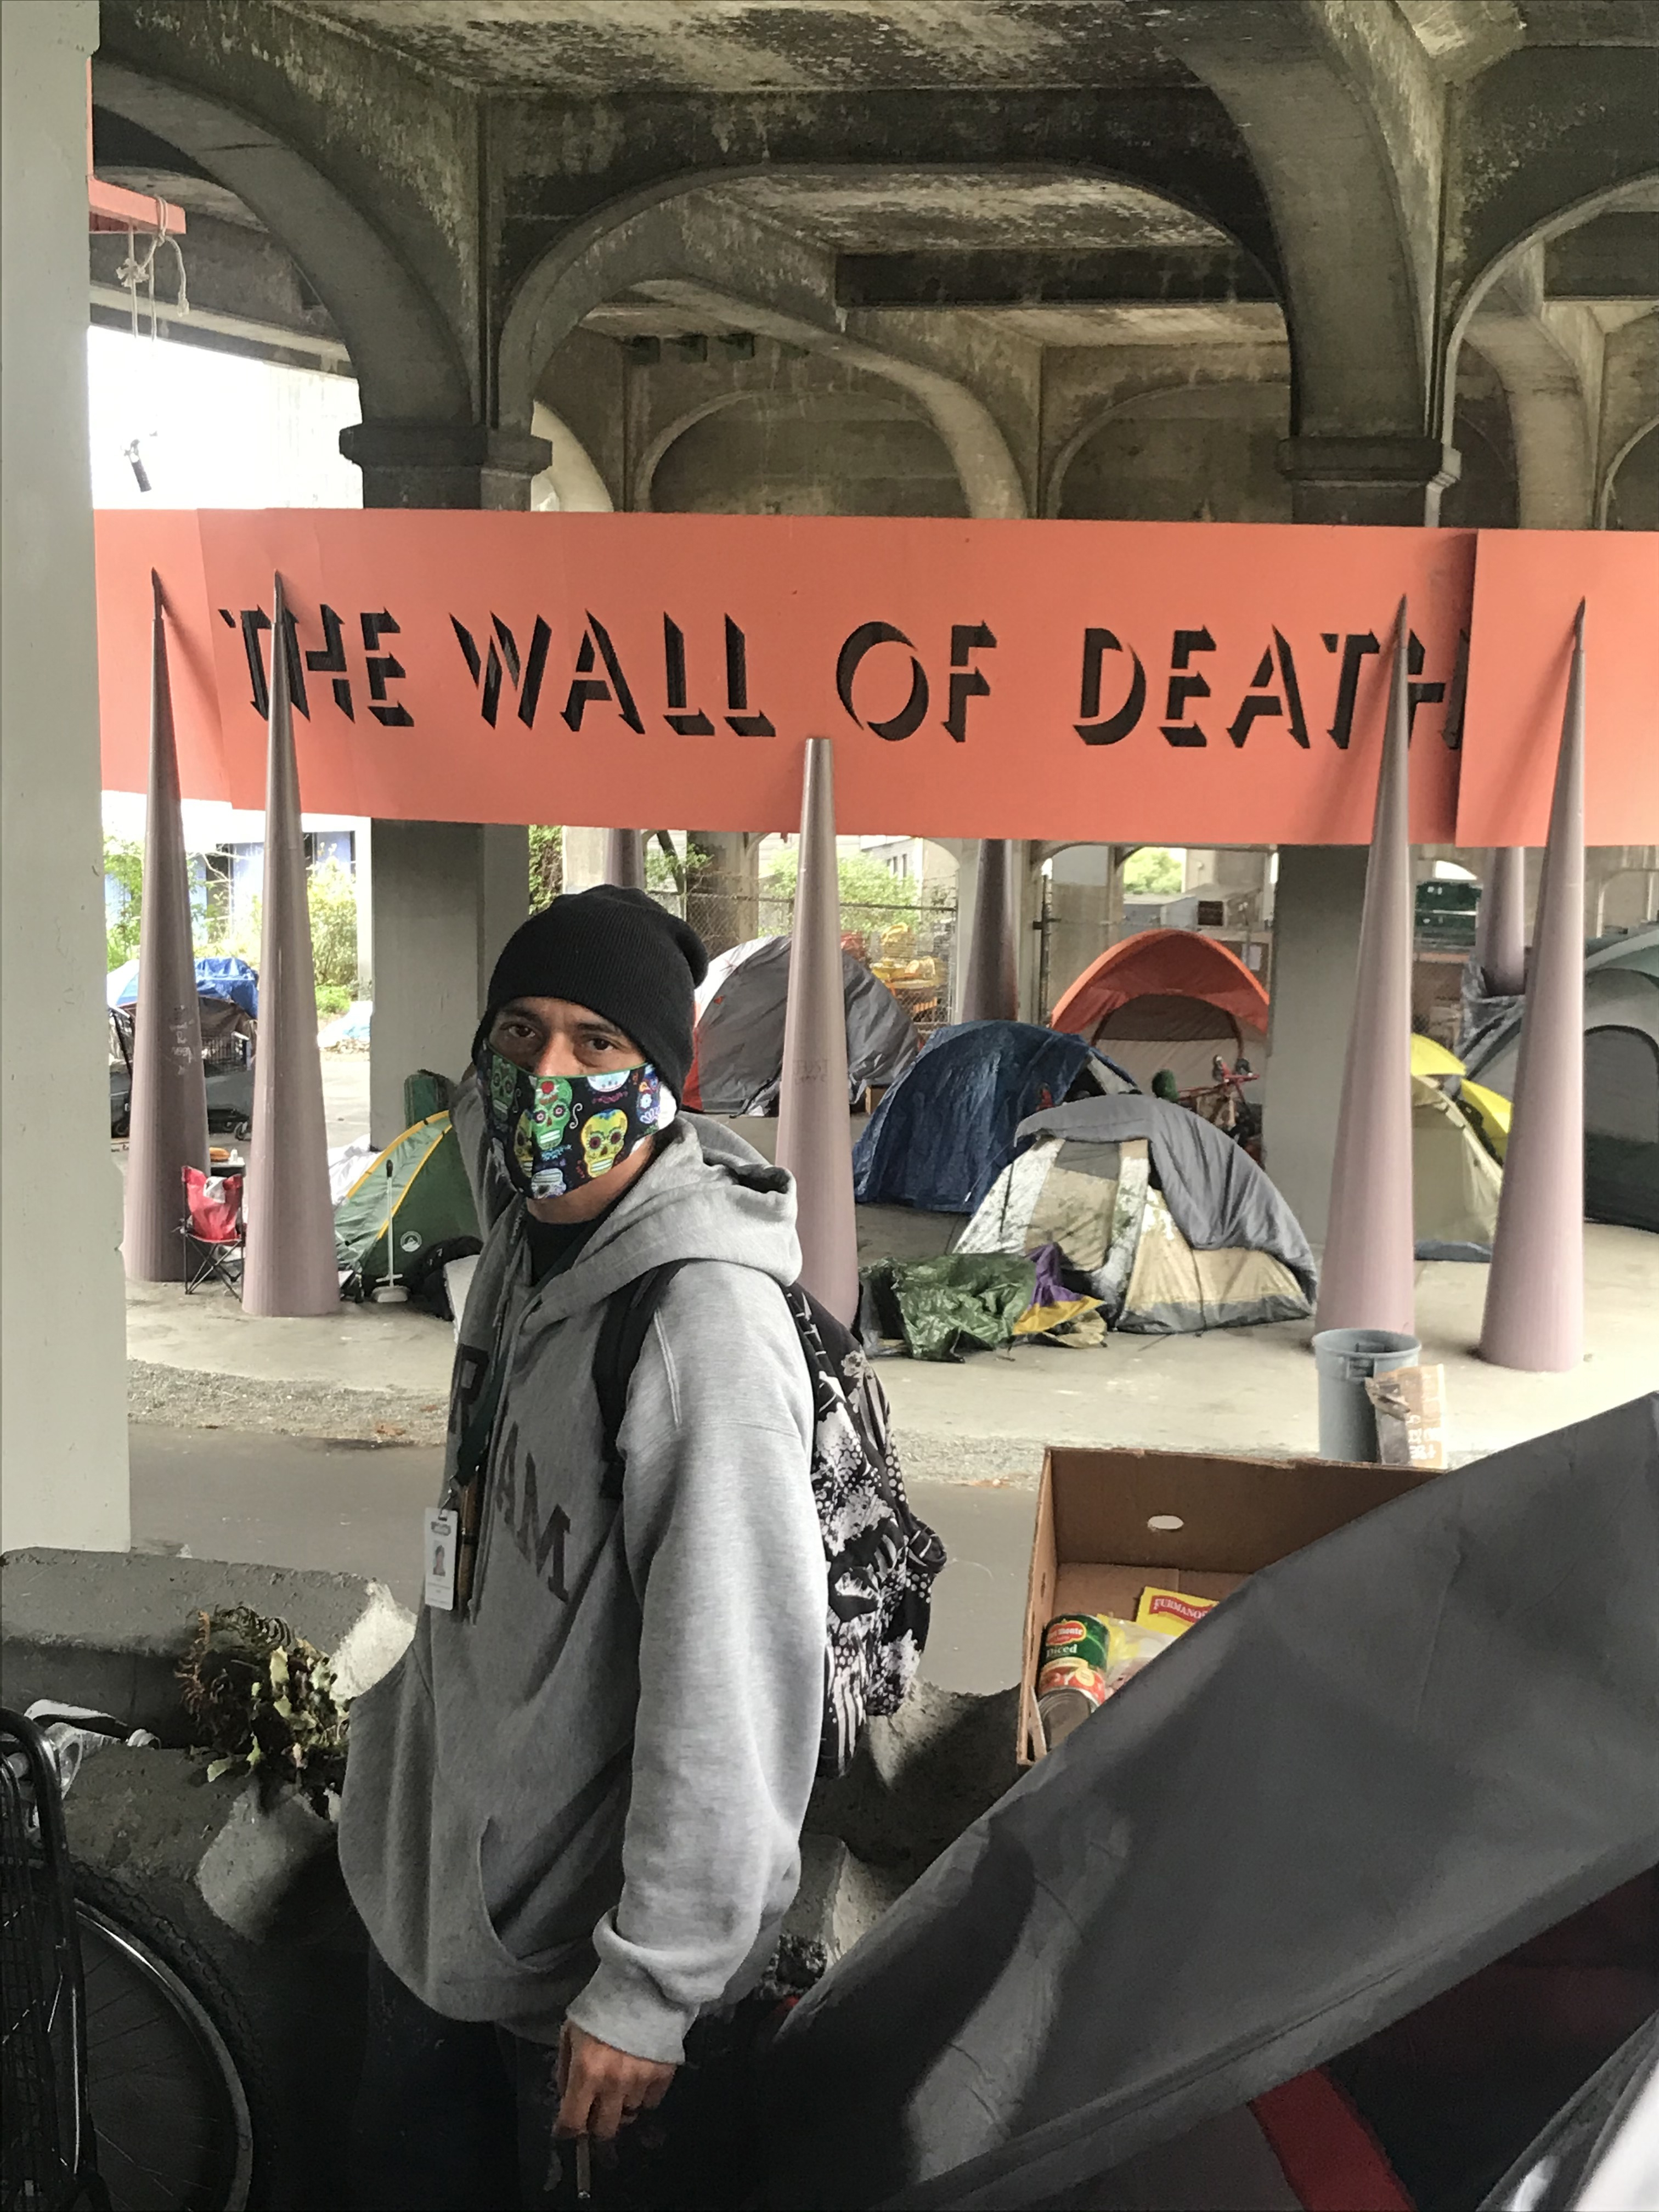 """As the REACH neighborhood care coordinator, David Delgado works directly with unhoused people in the Seattle area, such as the community camping under the University Bridge near the permanent art installation """"The Wall of Death,"""" to try to connect them wi"""